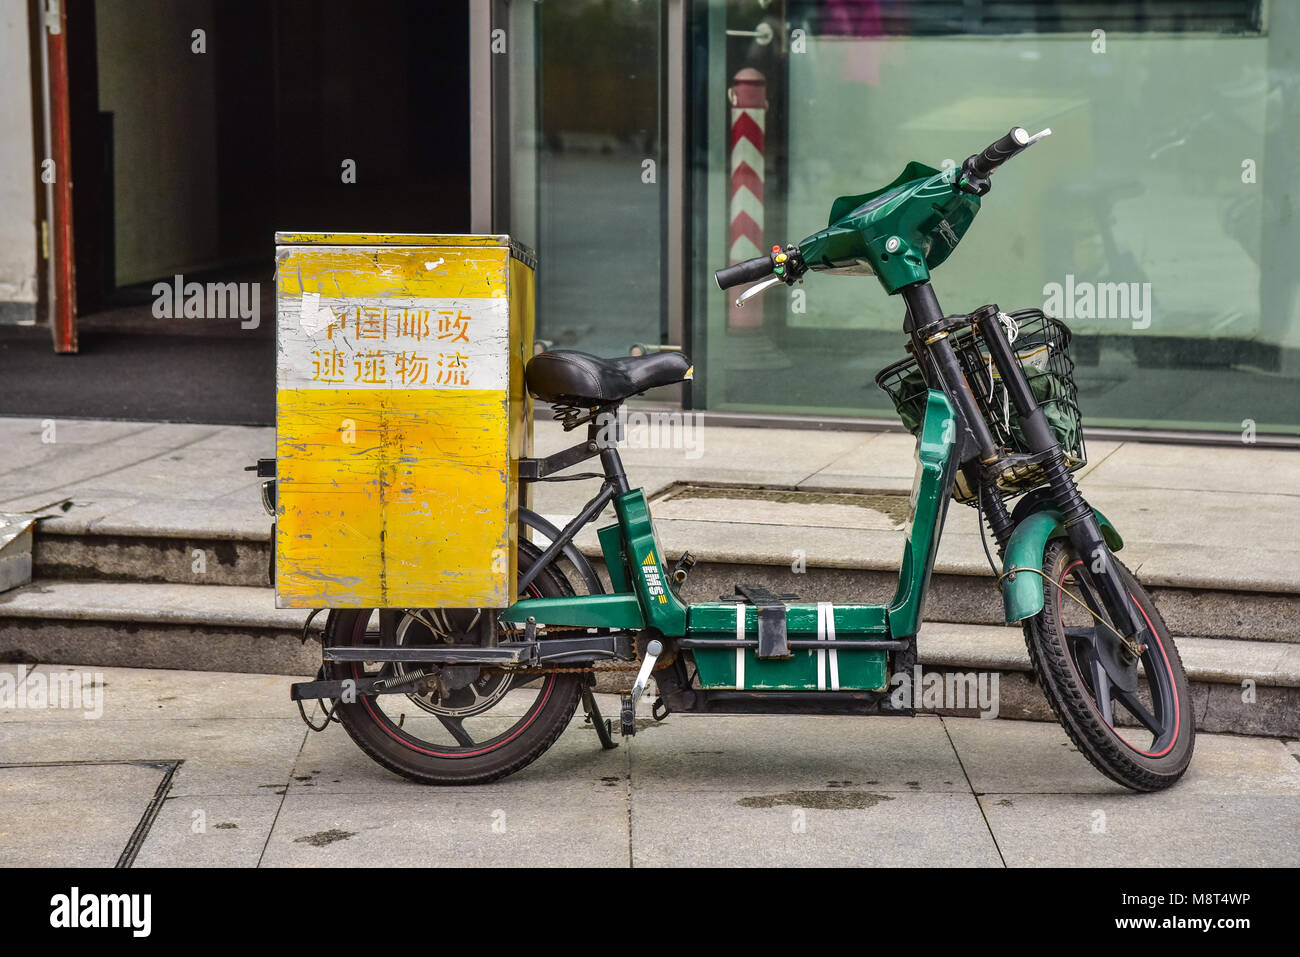 An old green scooter with a wooden storage box on back. A delivery bike in & Delivery Scooter Stock Photos u0026 Delivery Scooter Stock Images - Alamy